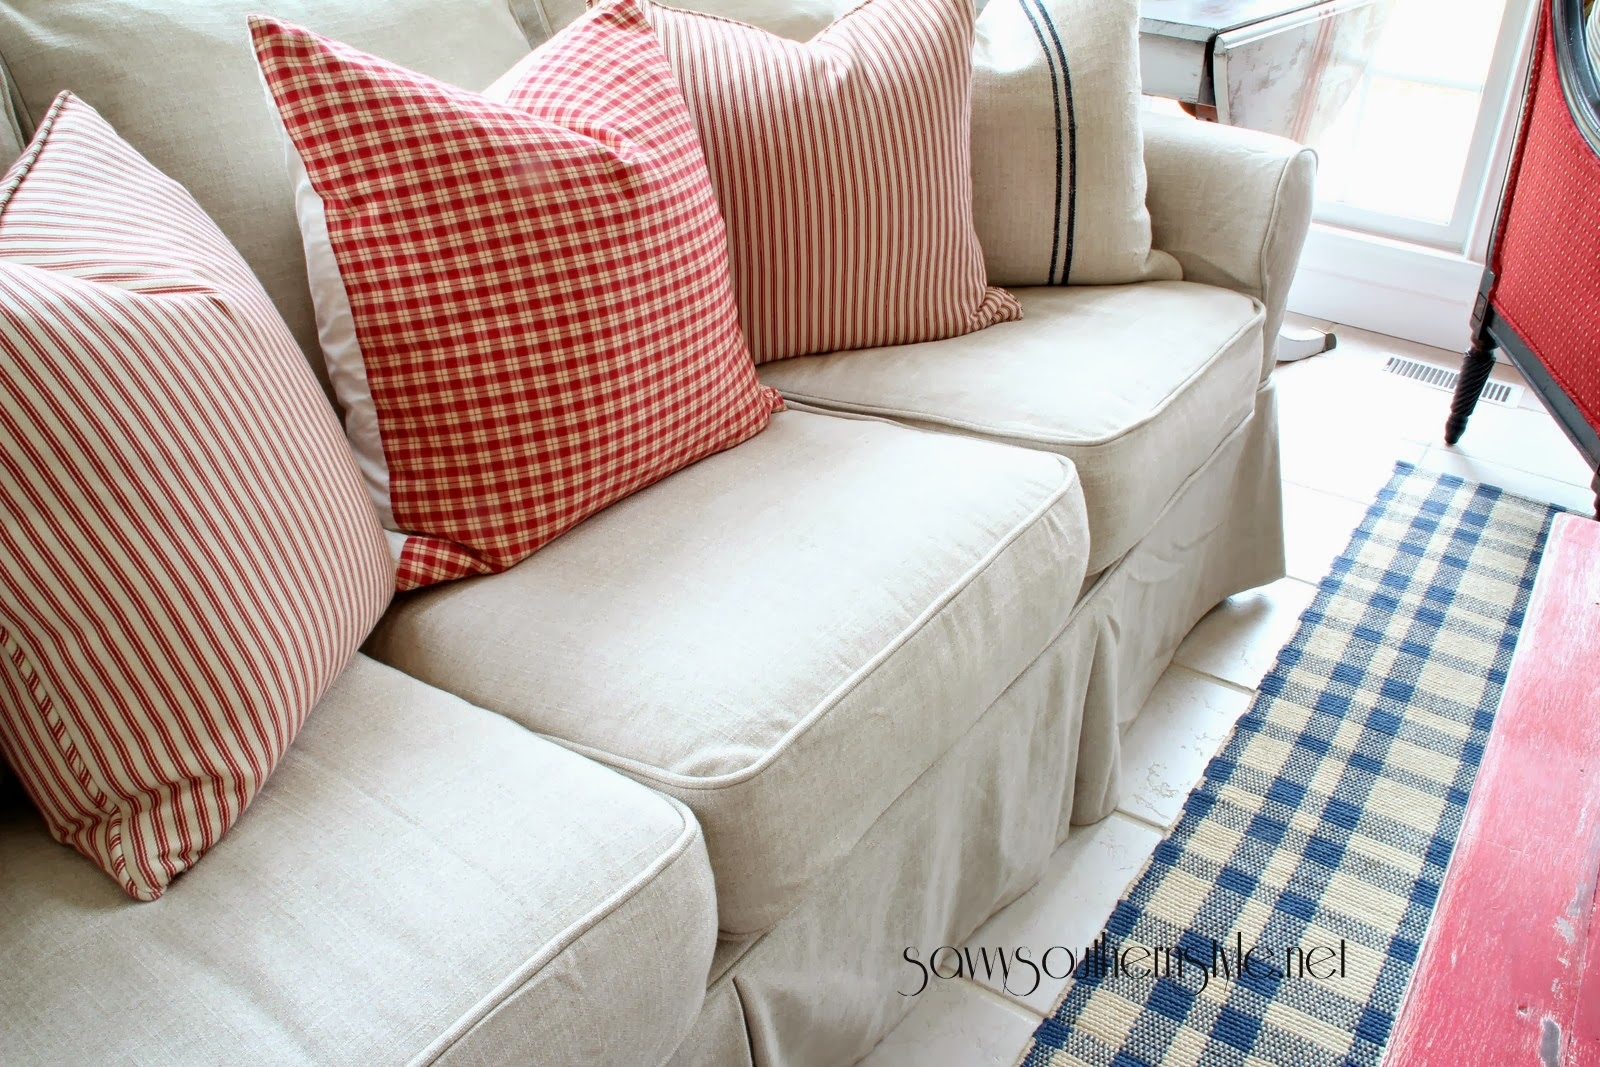 Custom Slipcovers And Couch Cover For Any Sofa Online Intended For Removable Covers Sectional Sofas (View 9 of 10)